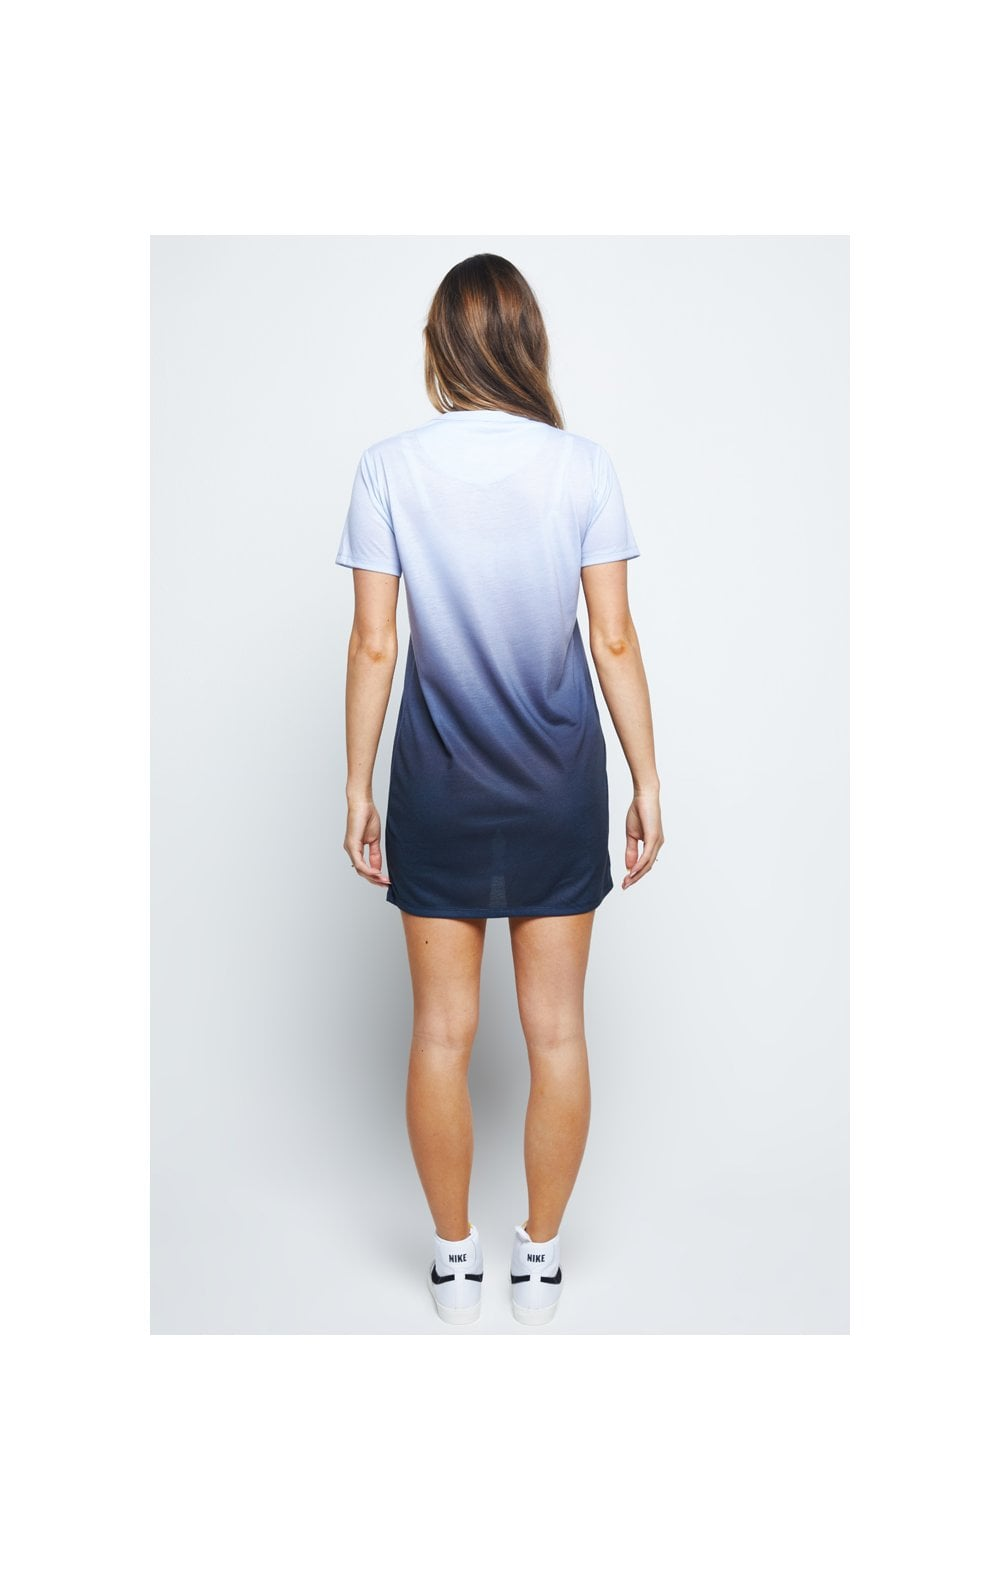 SikSilk Gravity Fade Tee Dress - Navy & Grey (3)